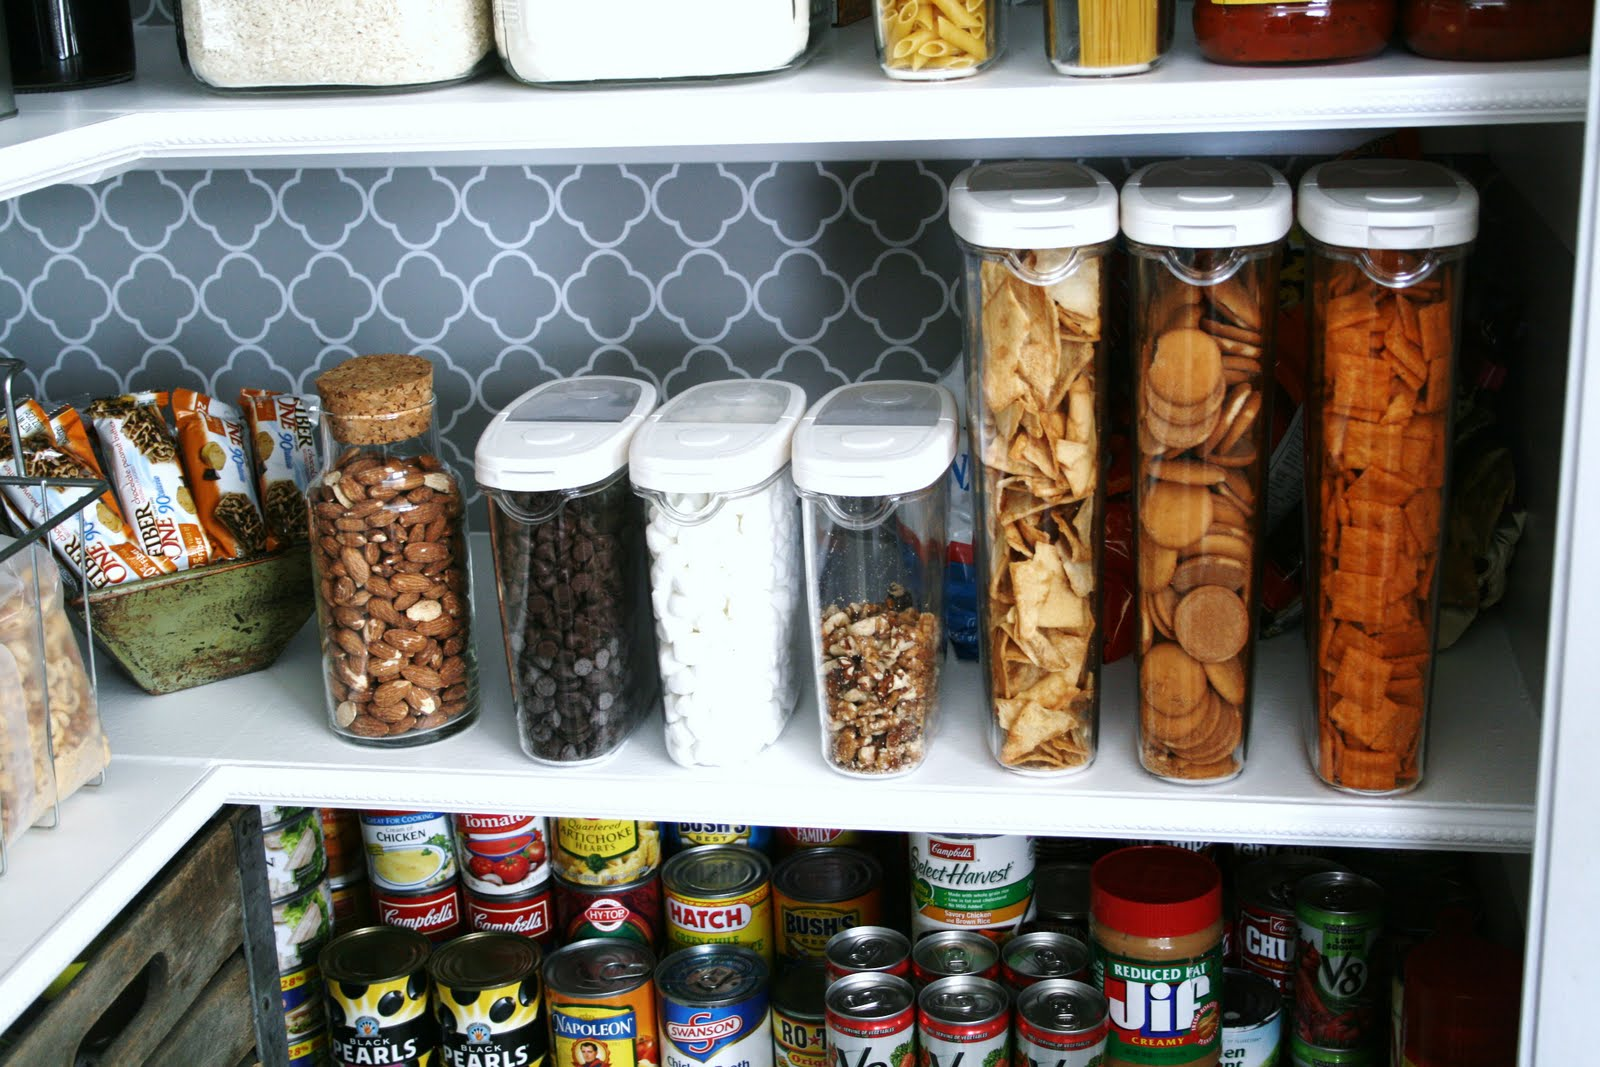 The glamorous Inspirational organize kitchen pantry photo